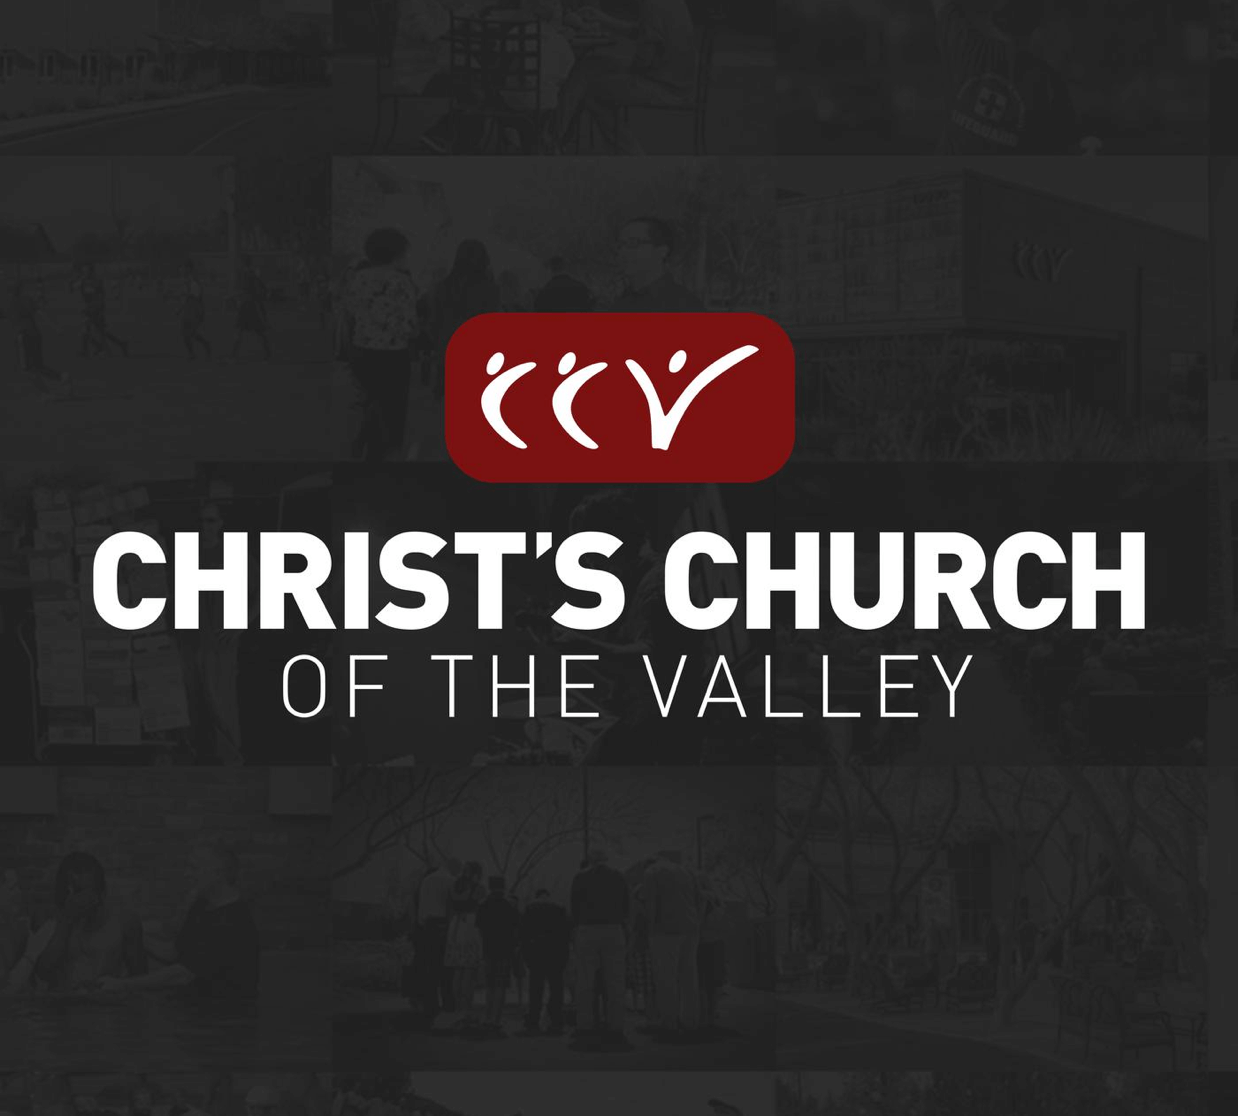 best-christian-churches-Chirts-church-of-the-valley-logo